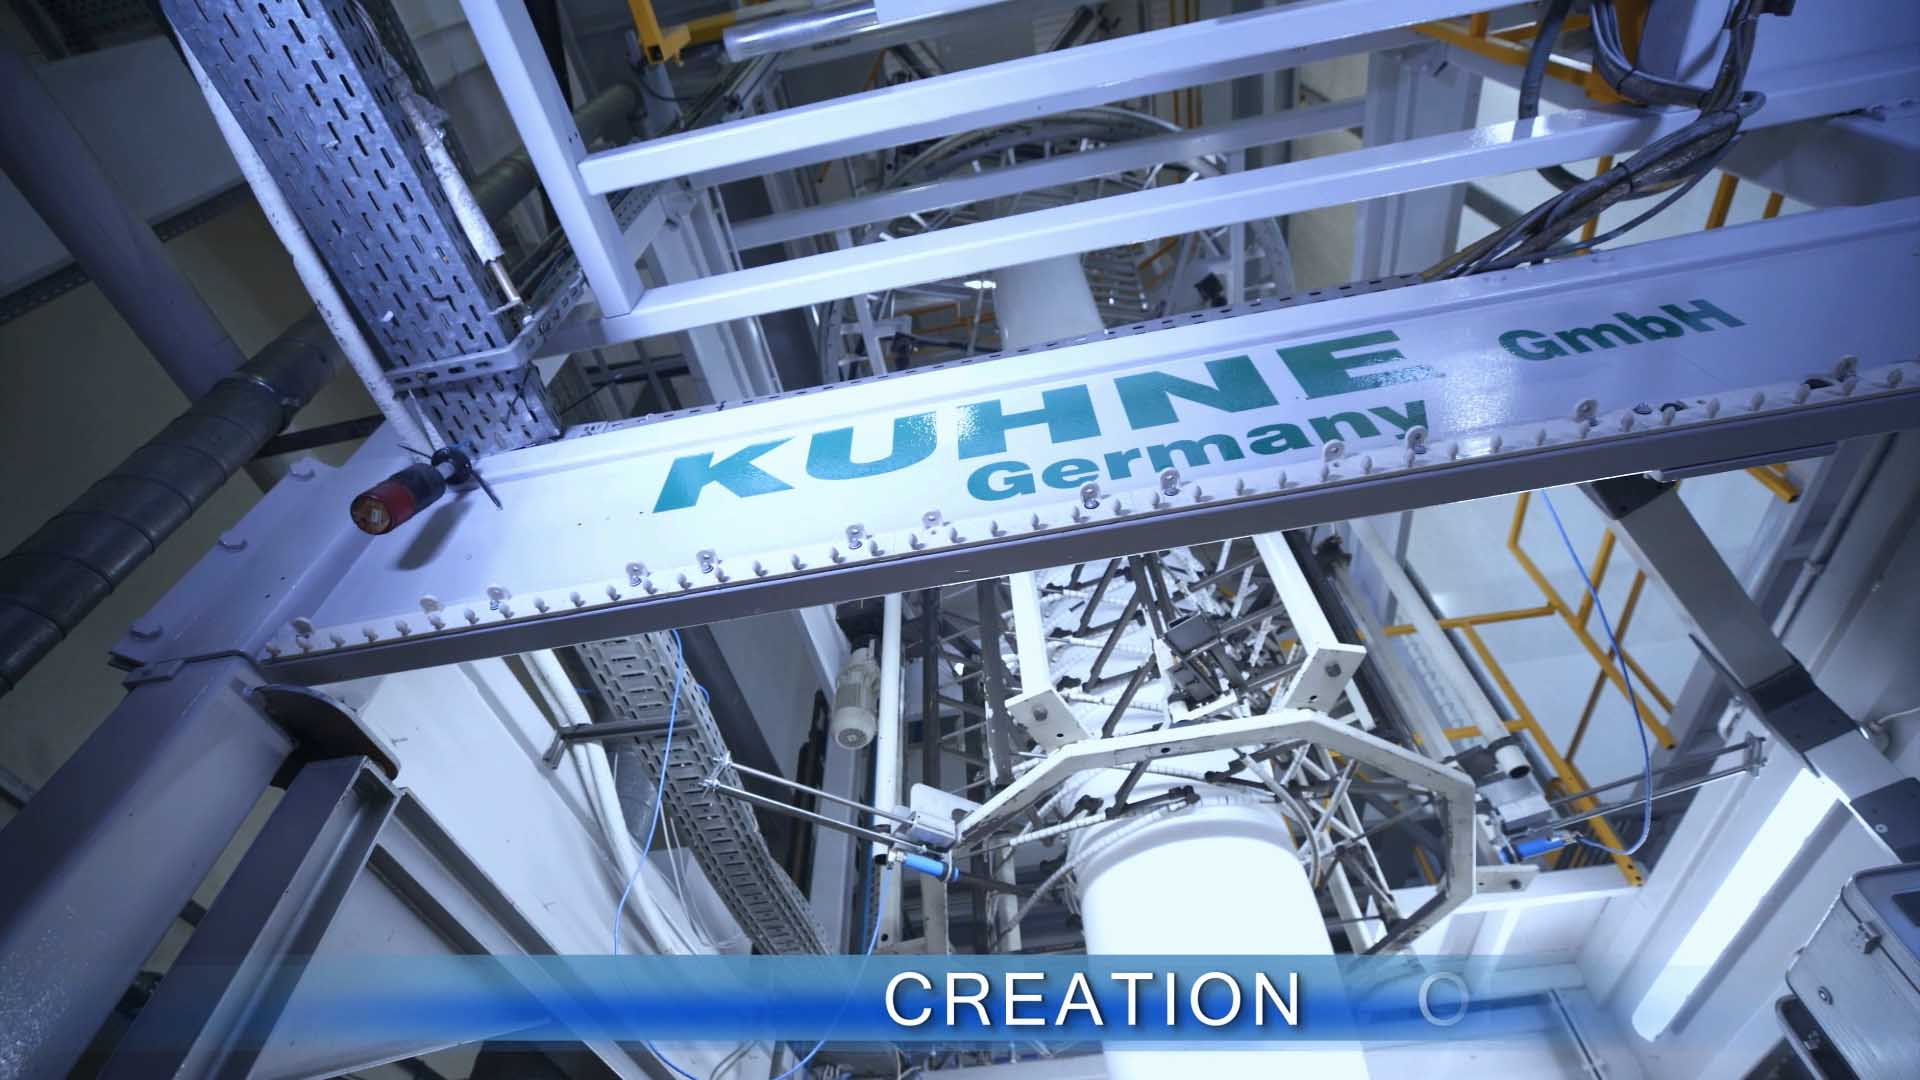 Kuhne Germany extruder